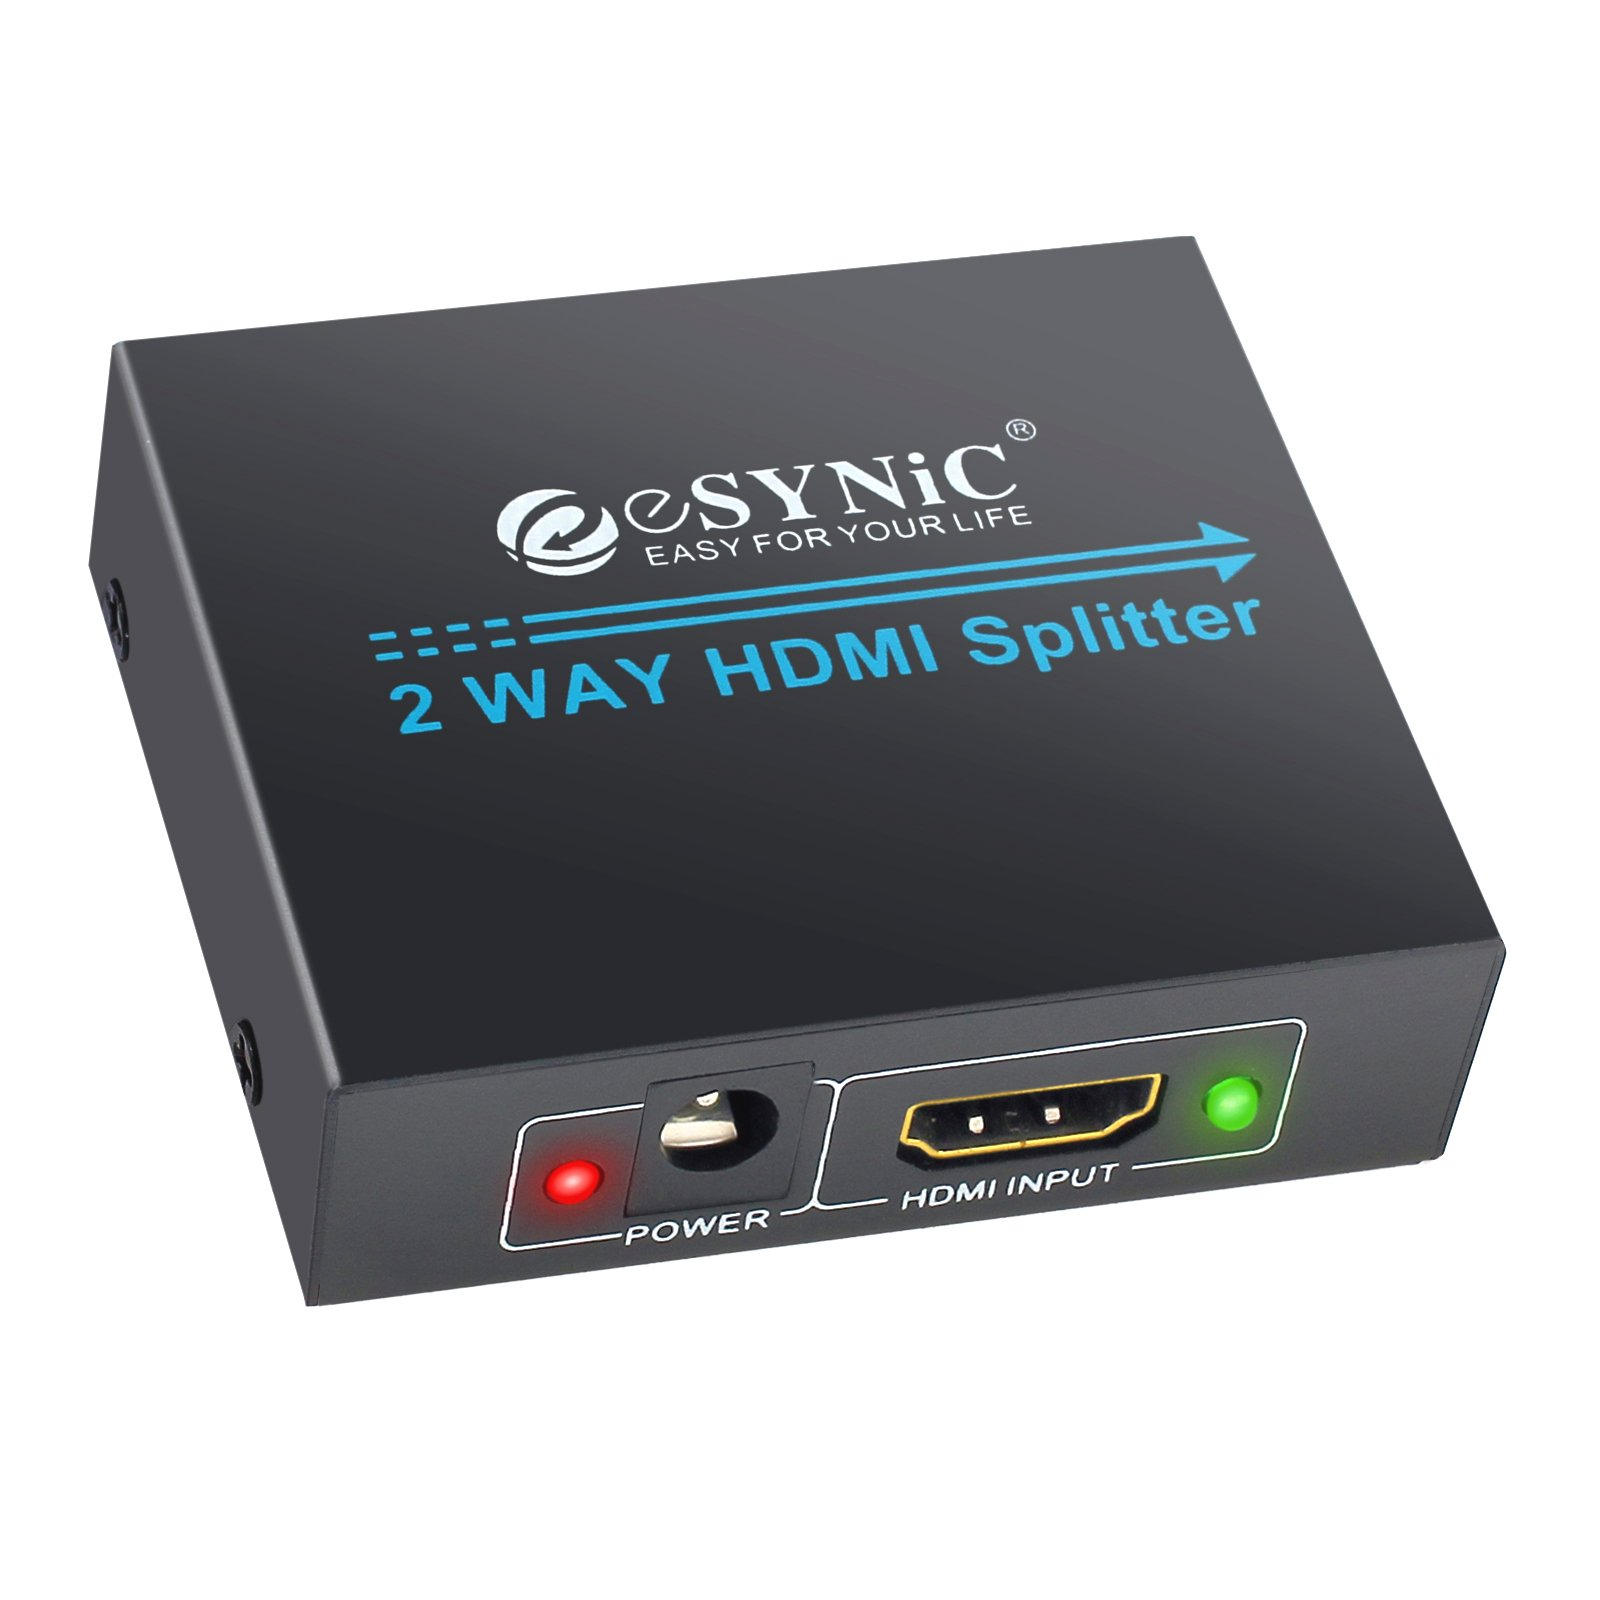 ESYNIC HDMI Splitter 1X2 HDMI Amplifier Switcher Box 1 in 2 Out HDMI Repeater Support Full HD 1080P 3D (One Input to Two Outputs)